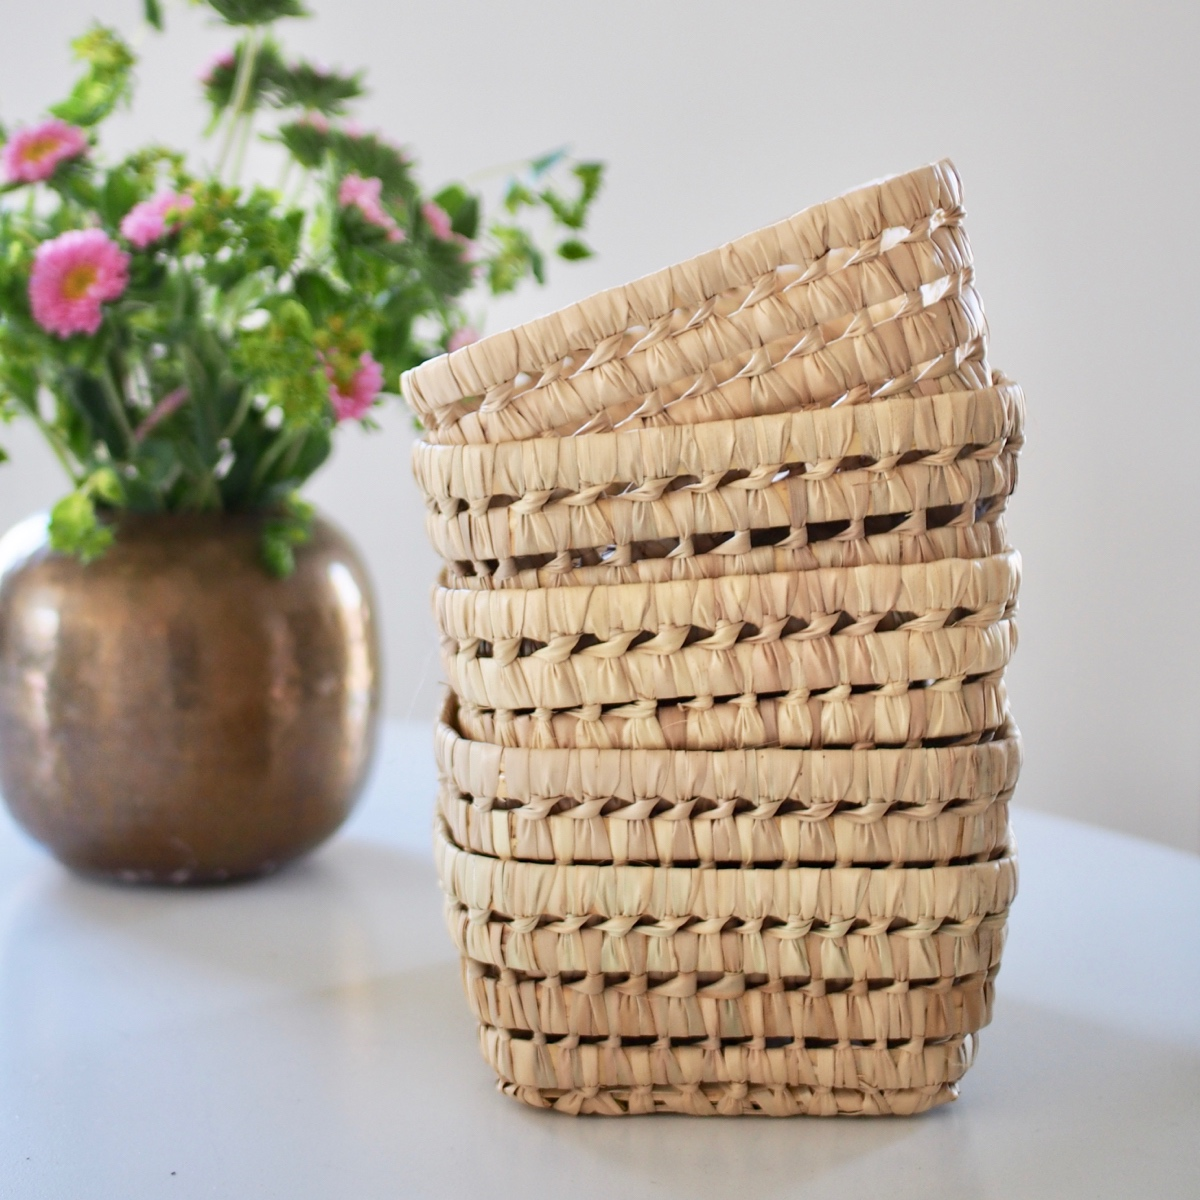 shop-wood-wicker-makamashi.jpg